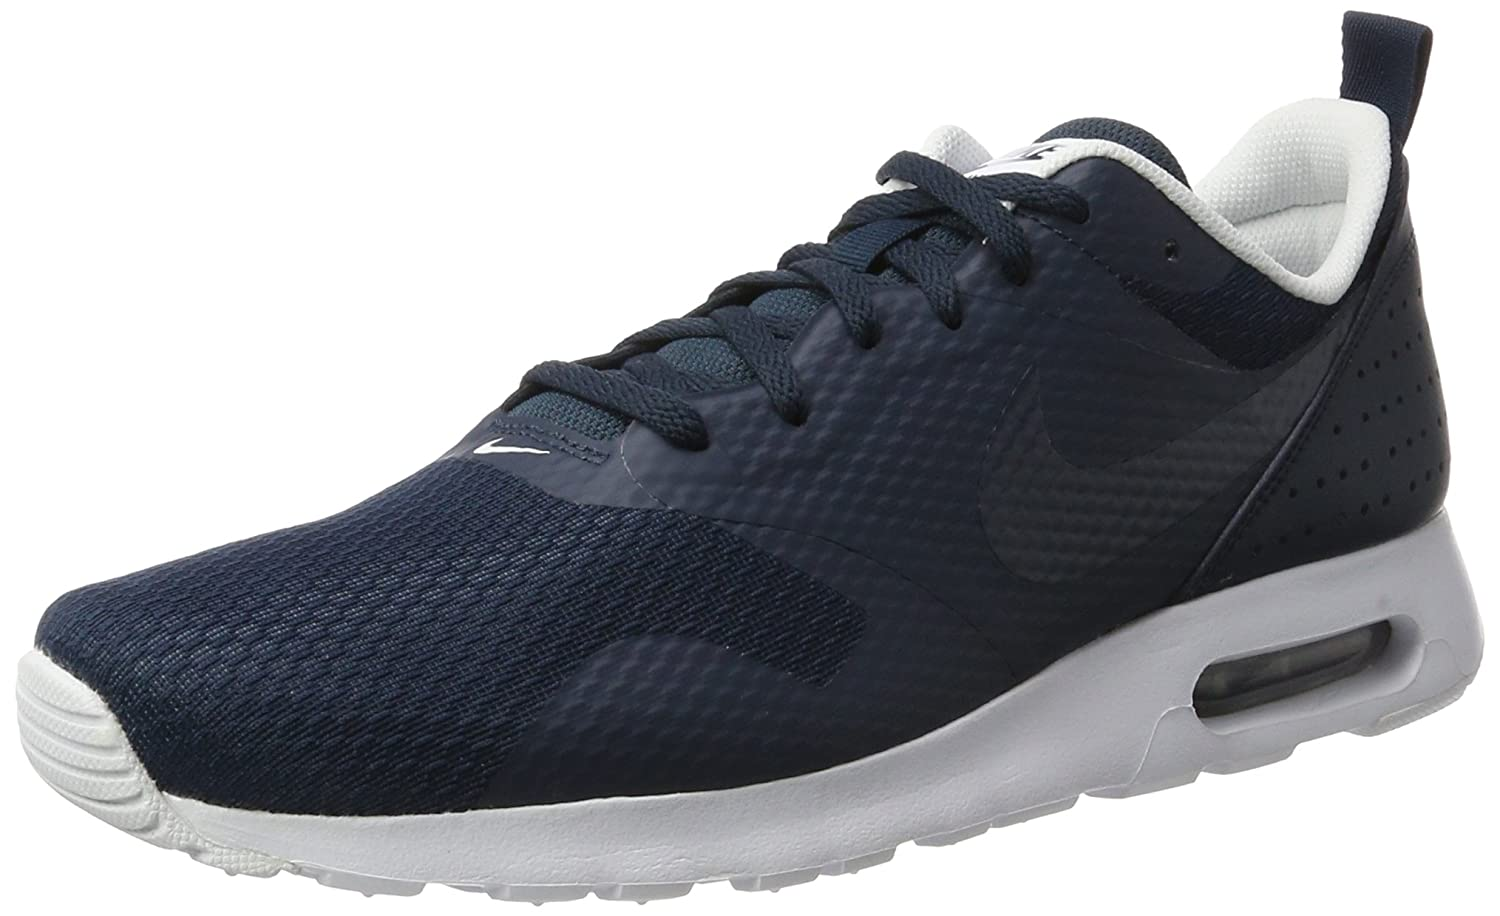 huge selection of e3490 71fcd Authentic Nike Mens Air Max Tavas Running Shoes Armory Navy Armory  Navy White Shop